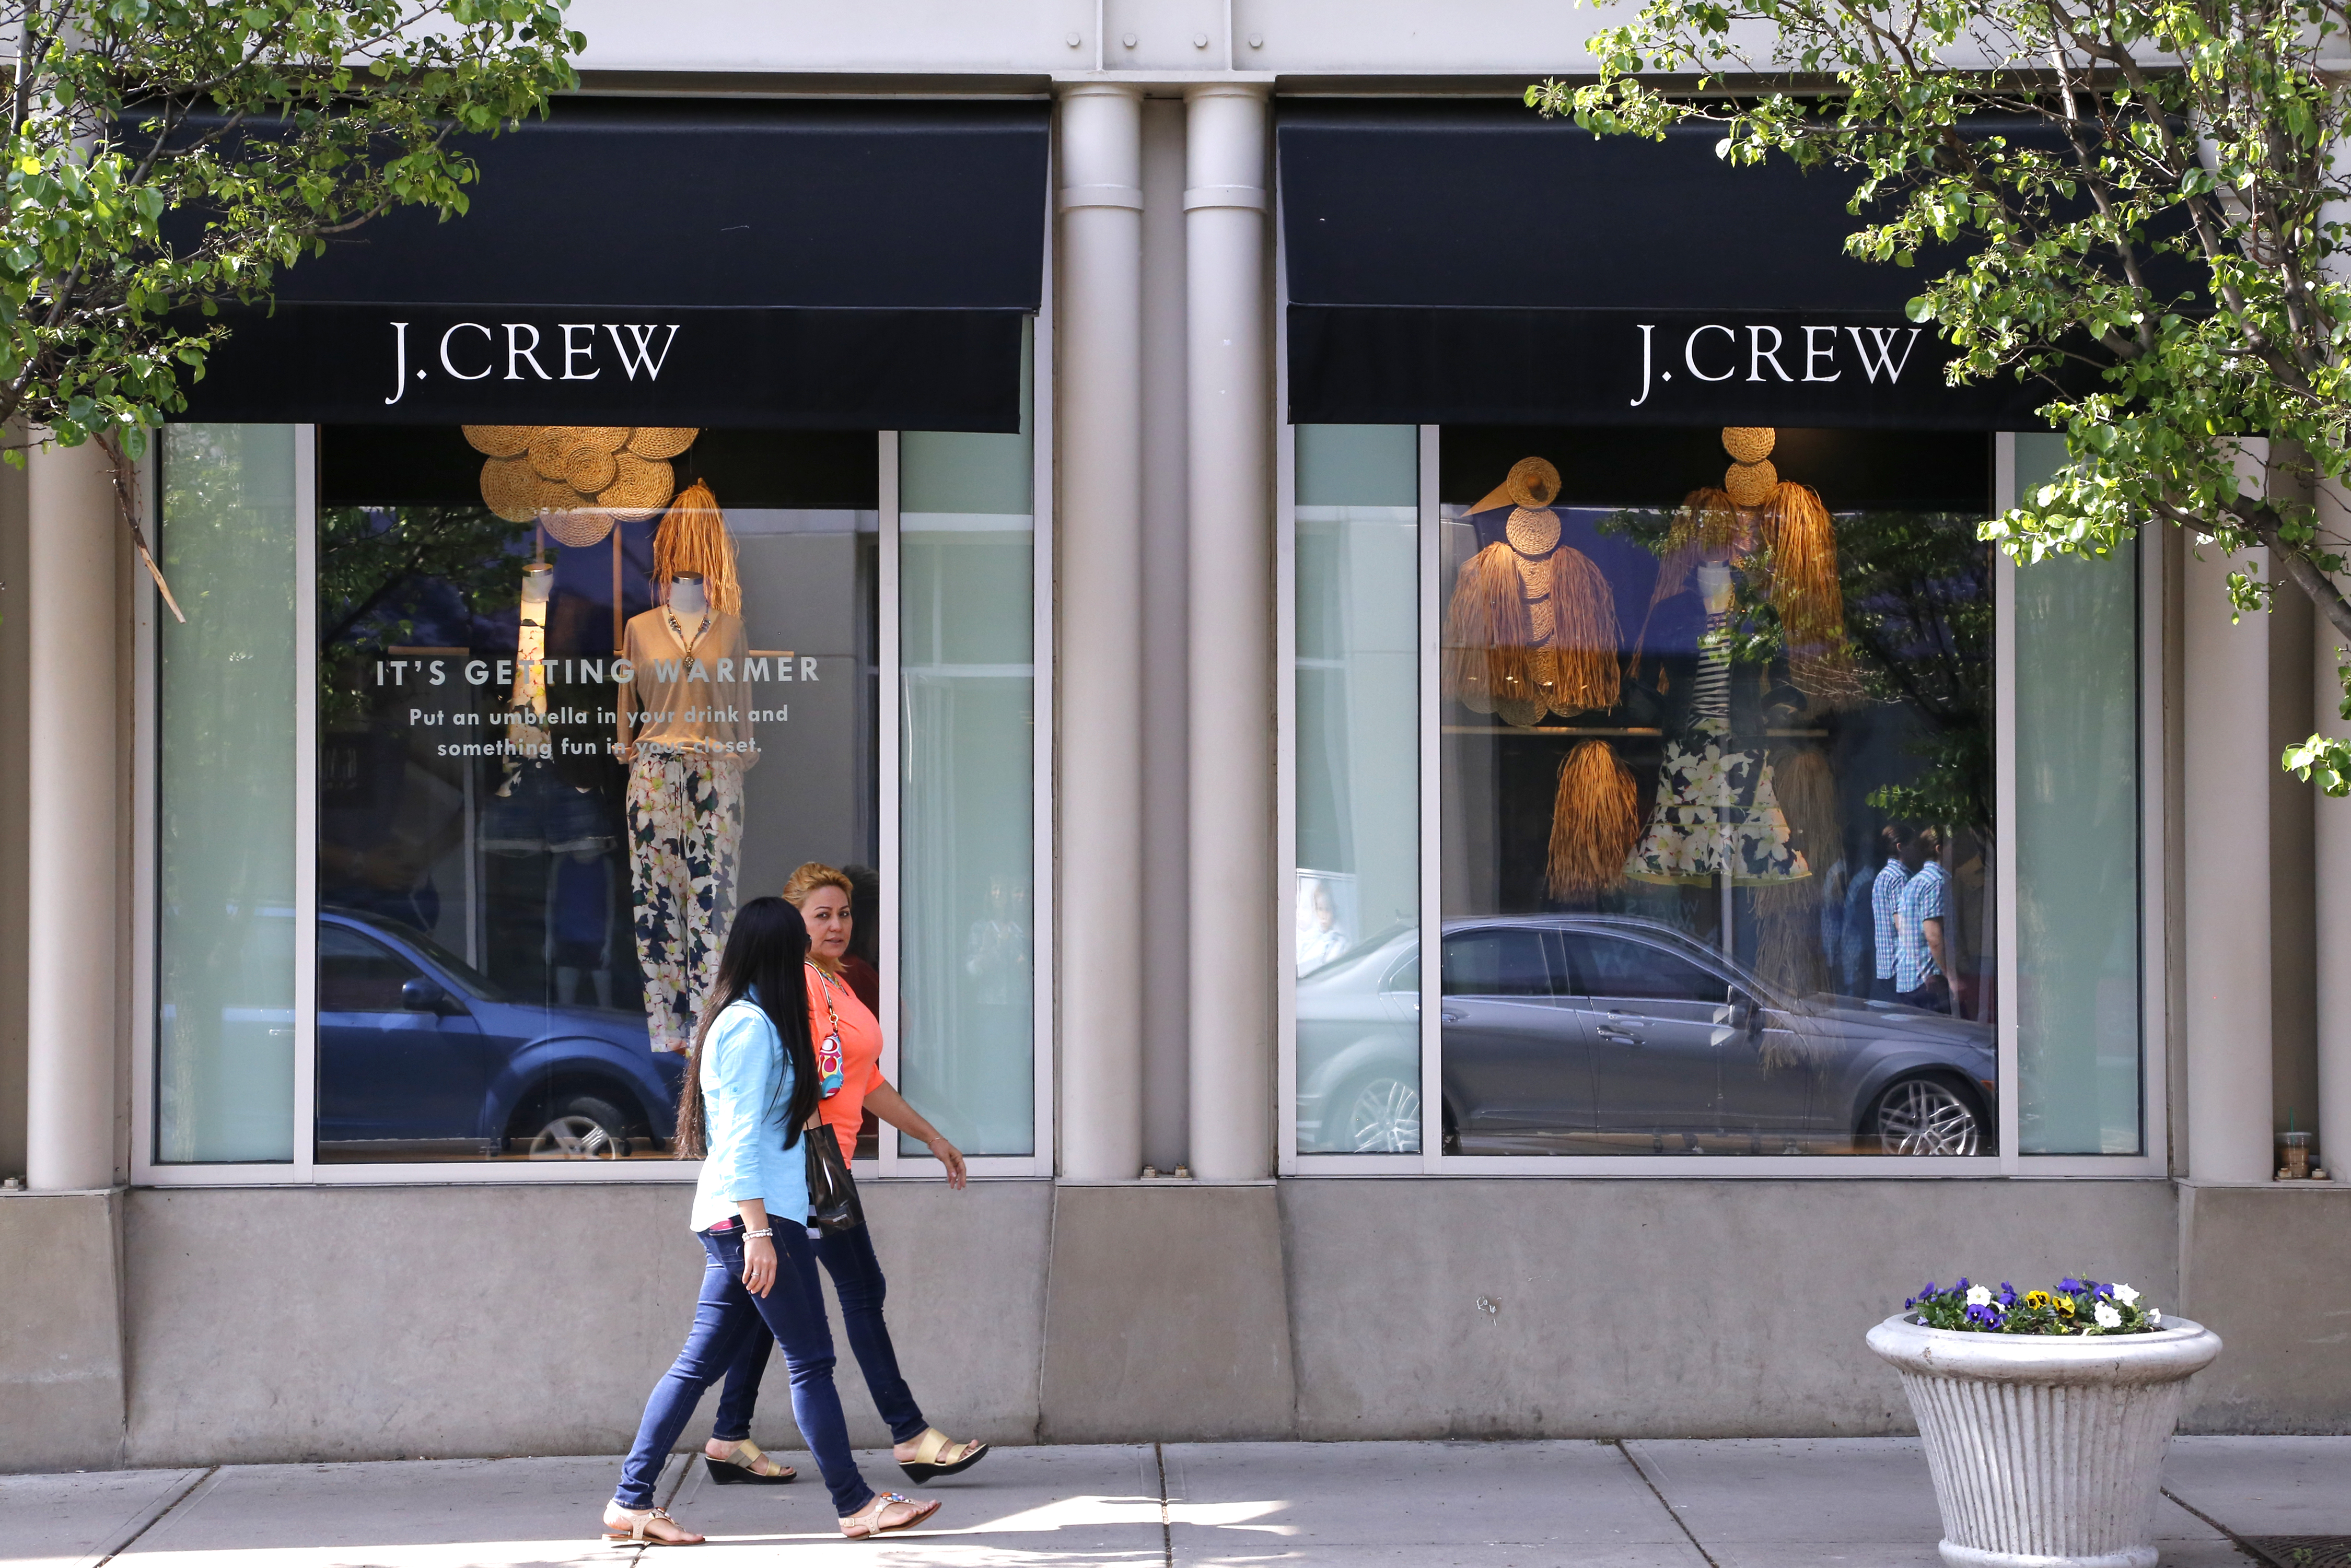 0eff4cabe3 The exit of J. Crew s CEO shows a brand unable to shake its identity crisis